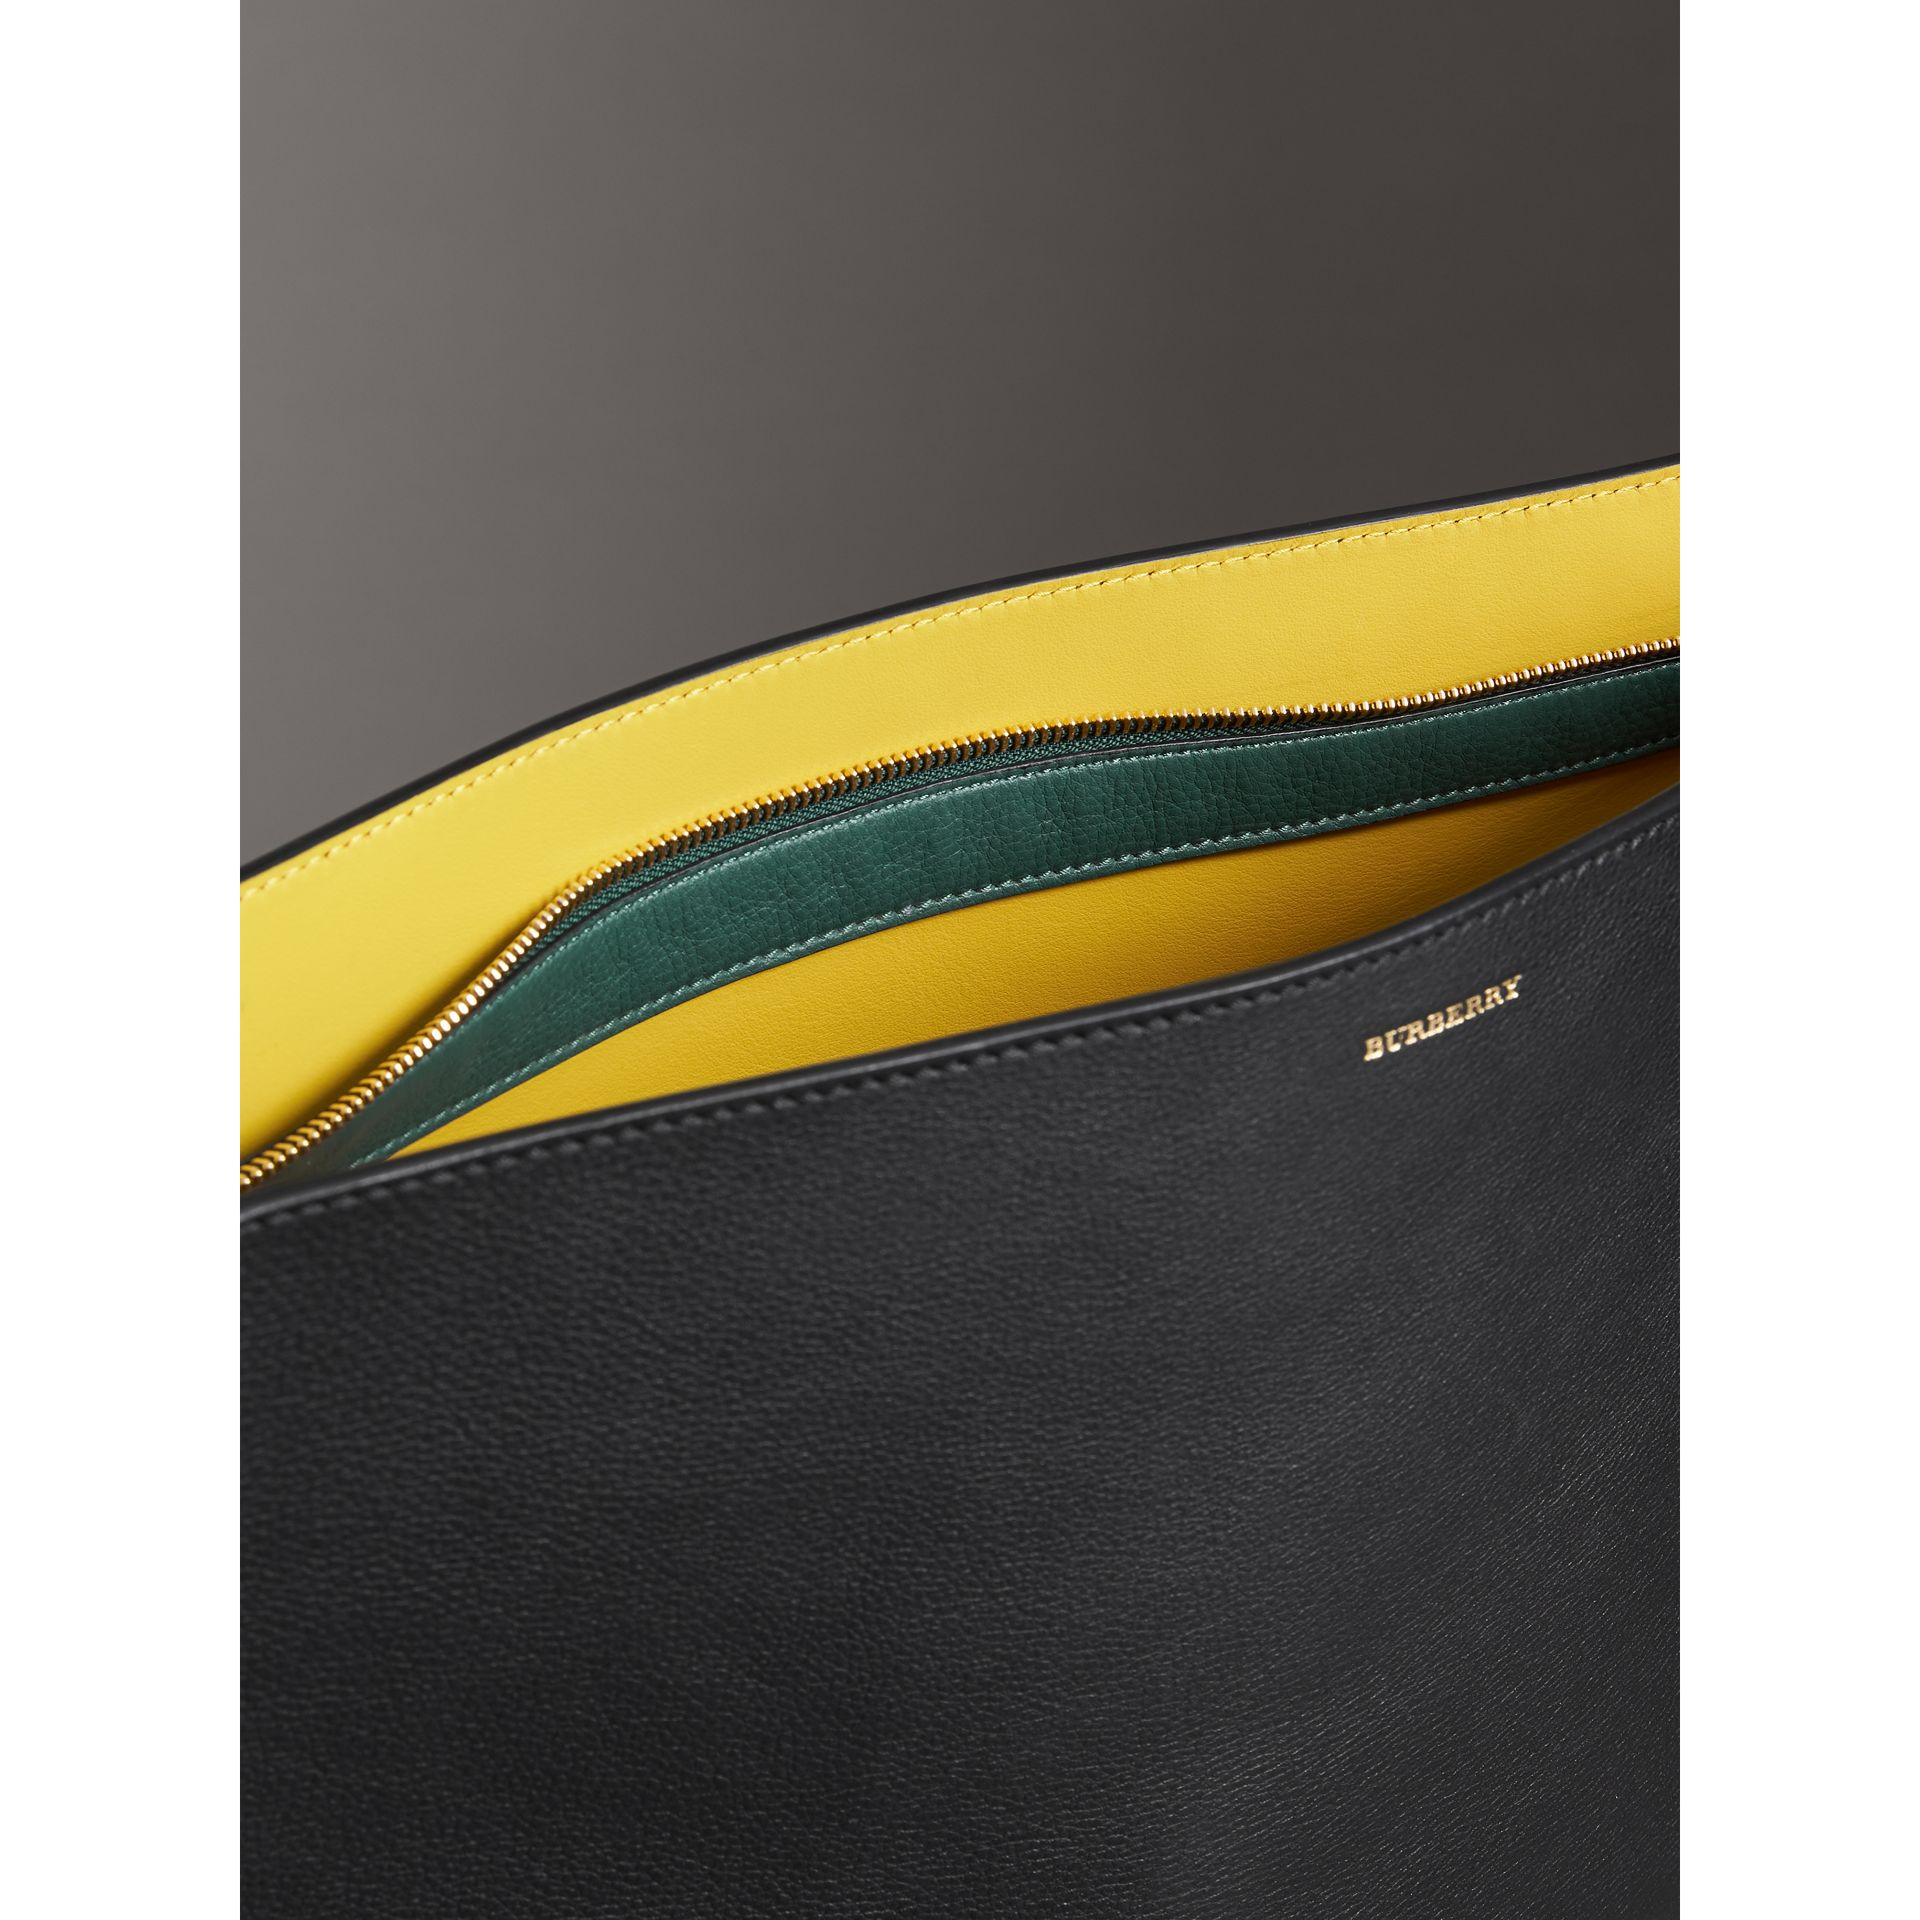 Large Tri-tone Leather Clutch in Black/sea Green - Women | Burberry - gallery image 5